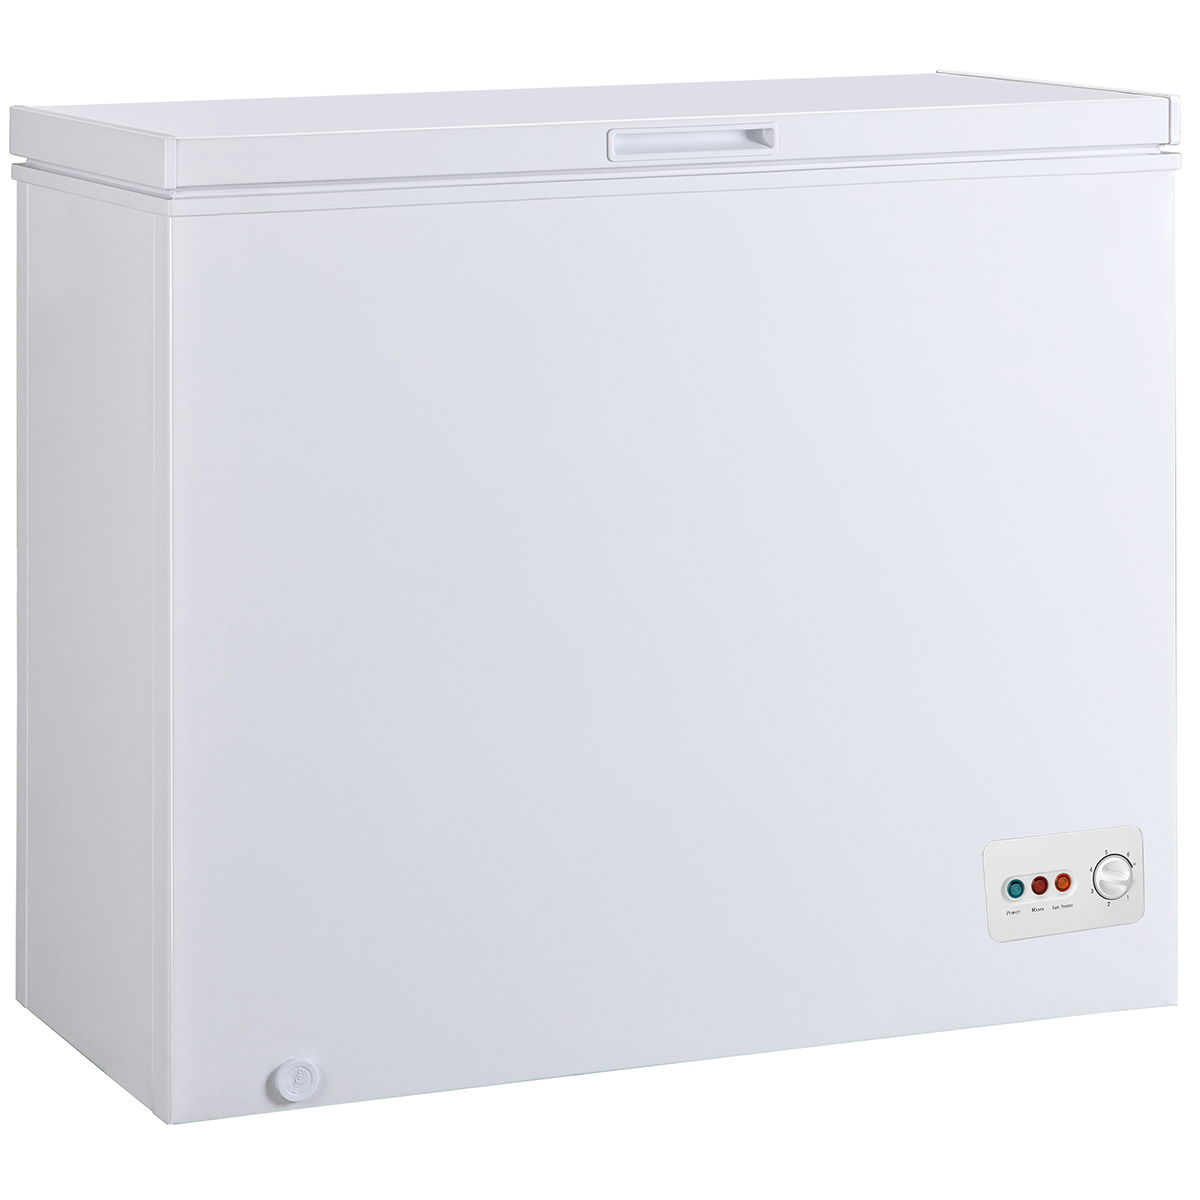 Midea MCH198W 198L Chest Freezer